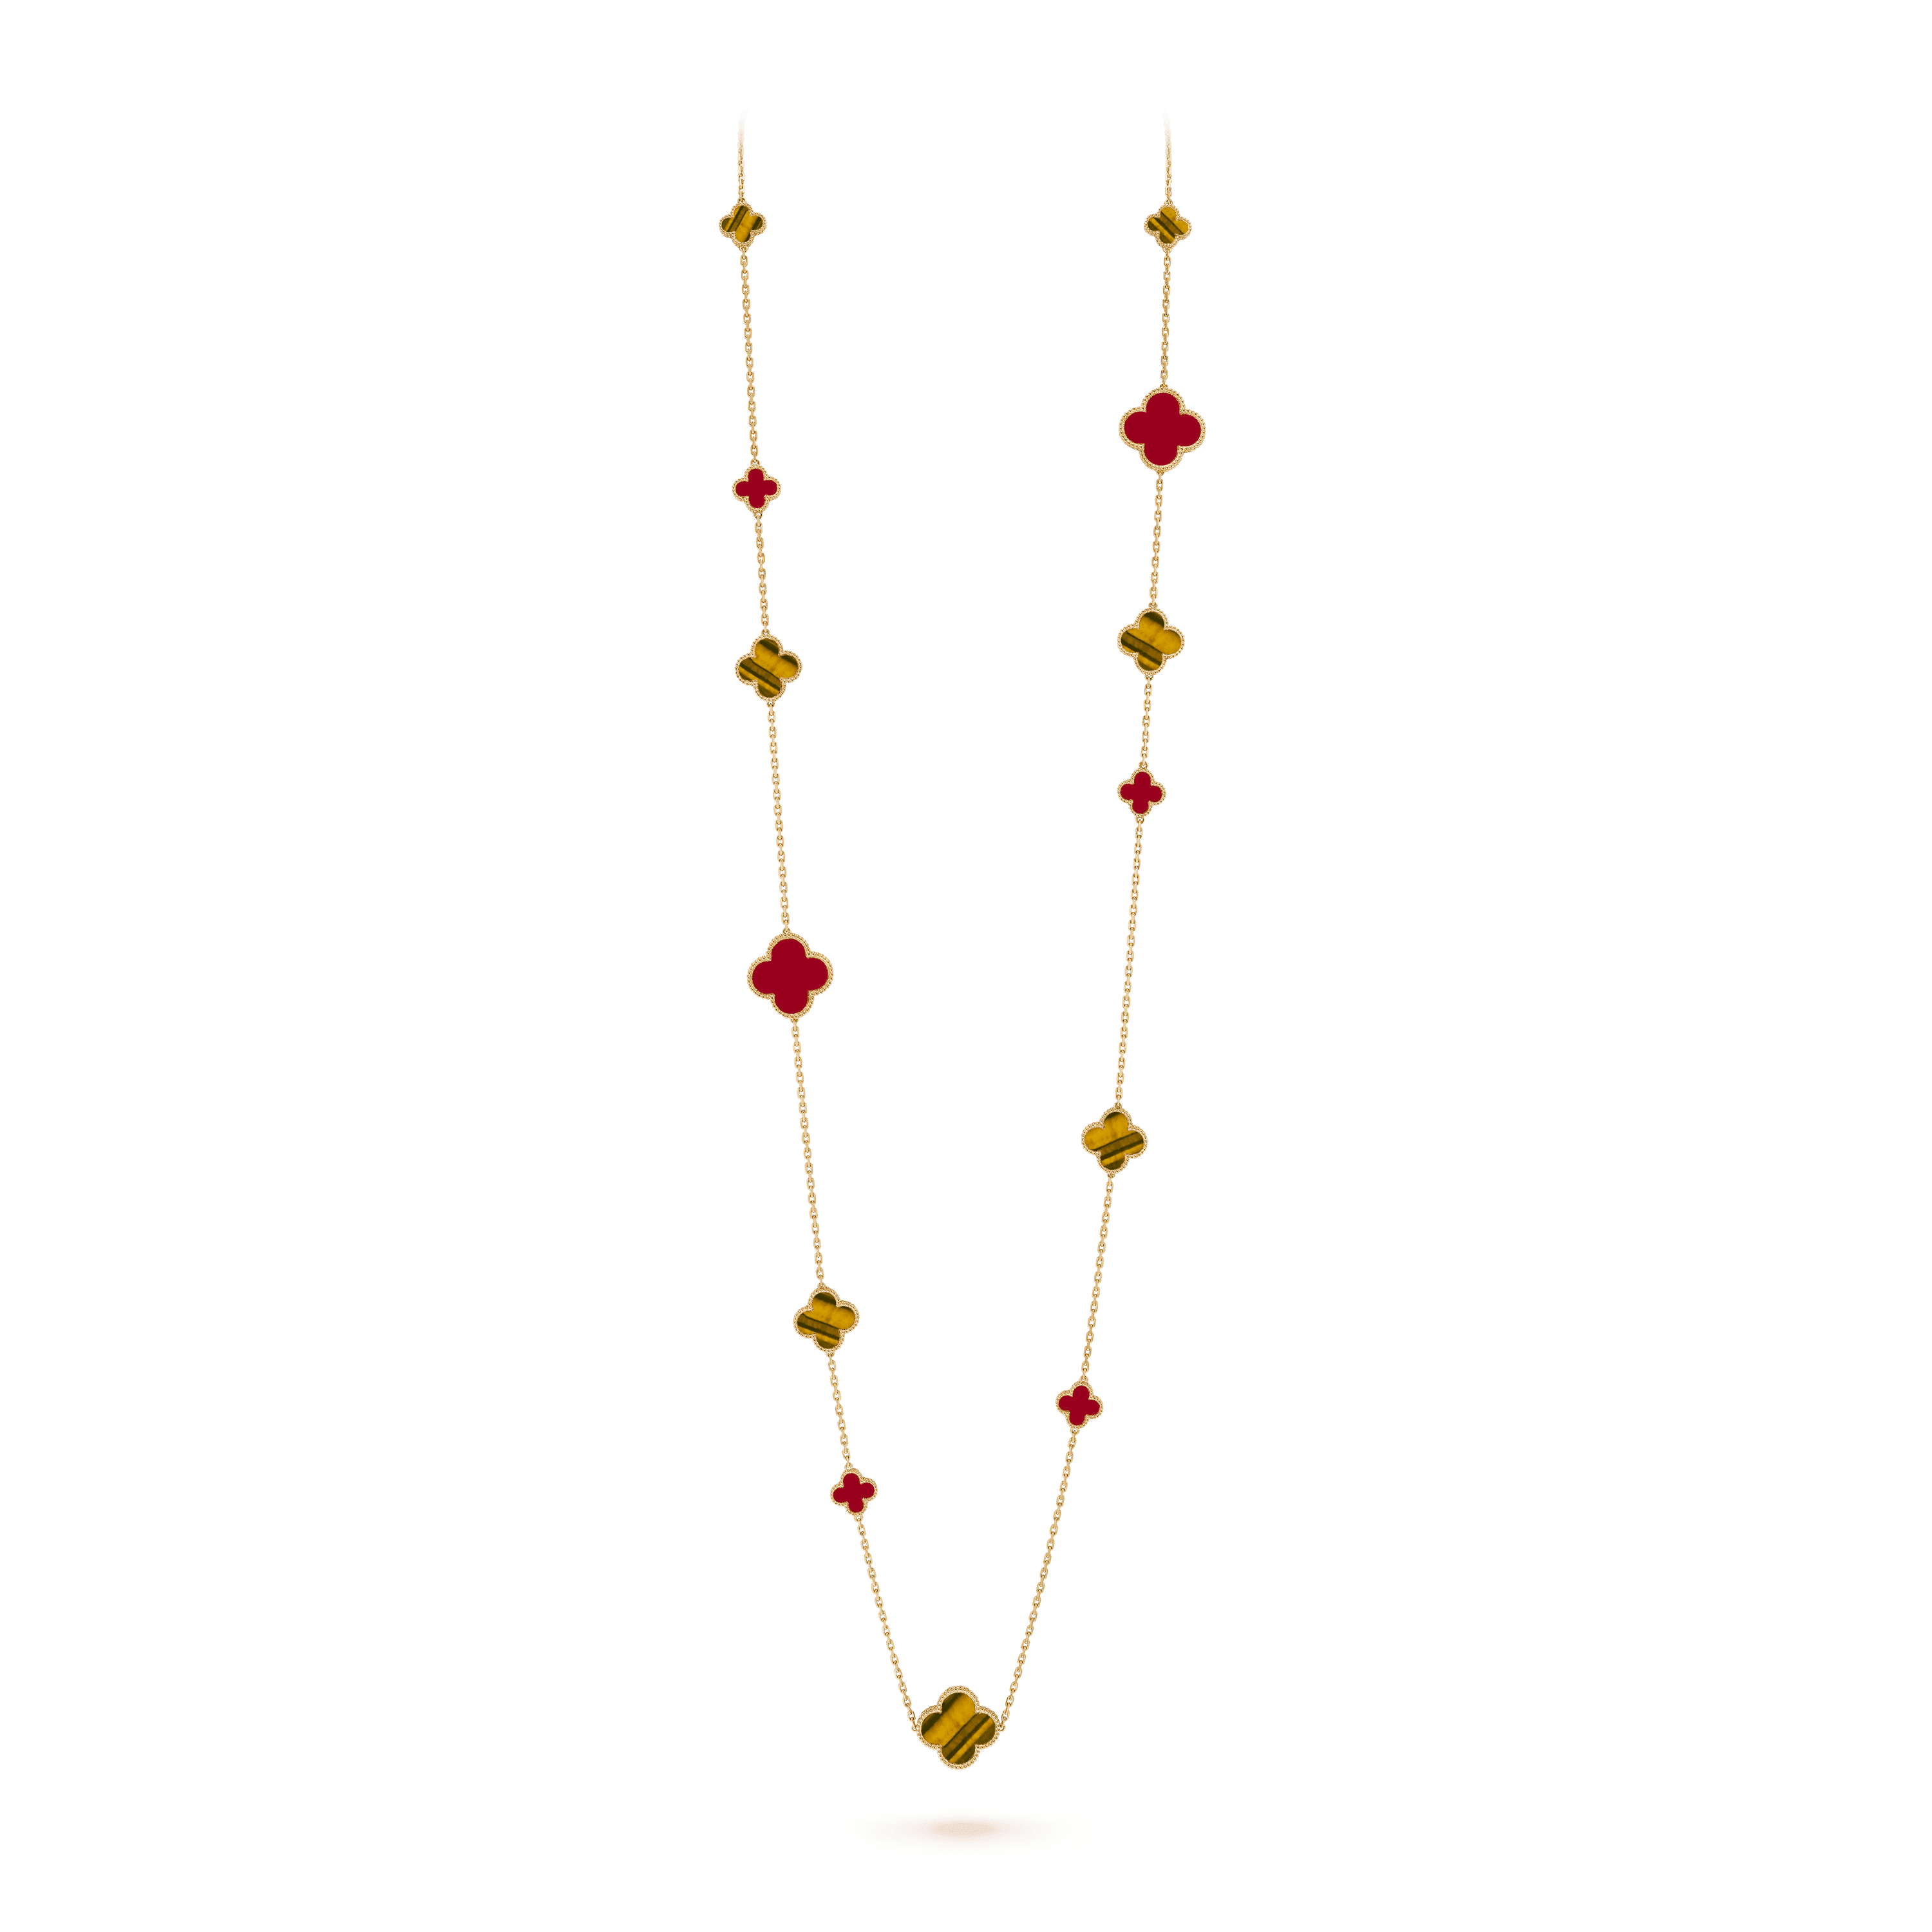 Magic Alhambra long necklace, 16 motifs, - On Stand View - VCARN5JO00 - Van Cleef & Arpels